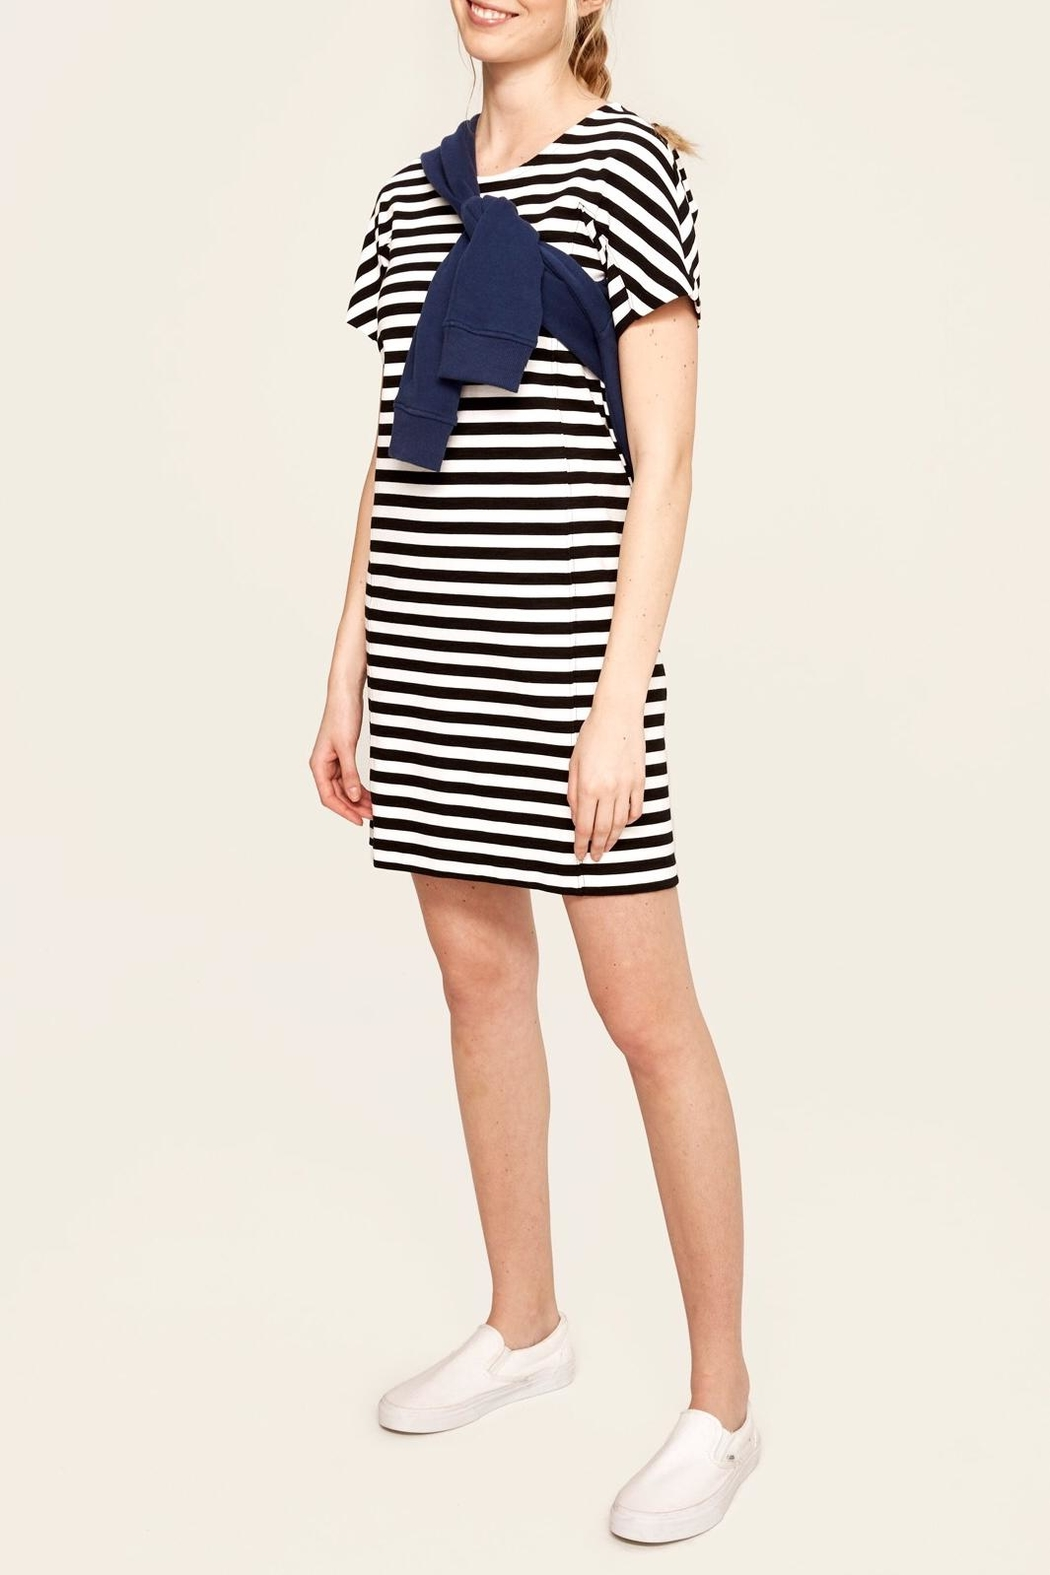 Lole Selah Striped Dress - Front Cropped Image